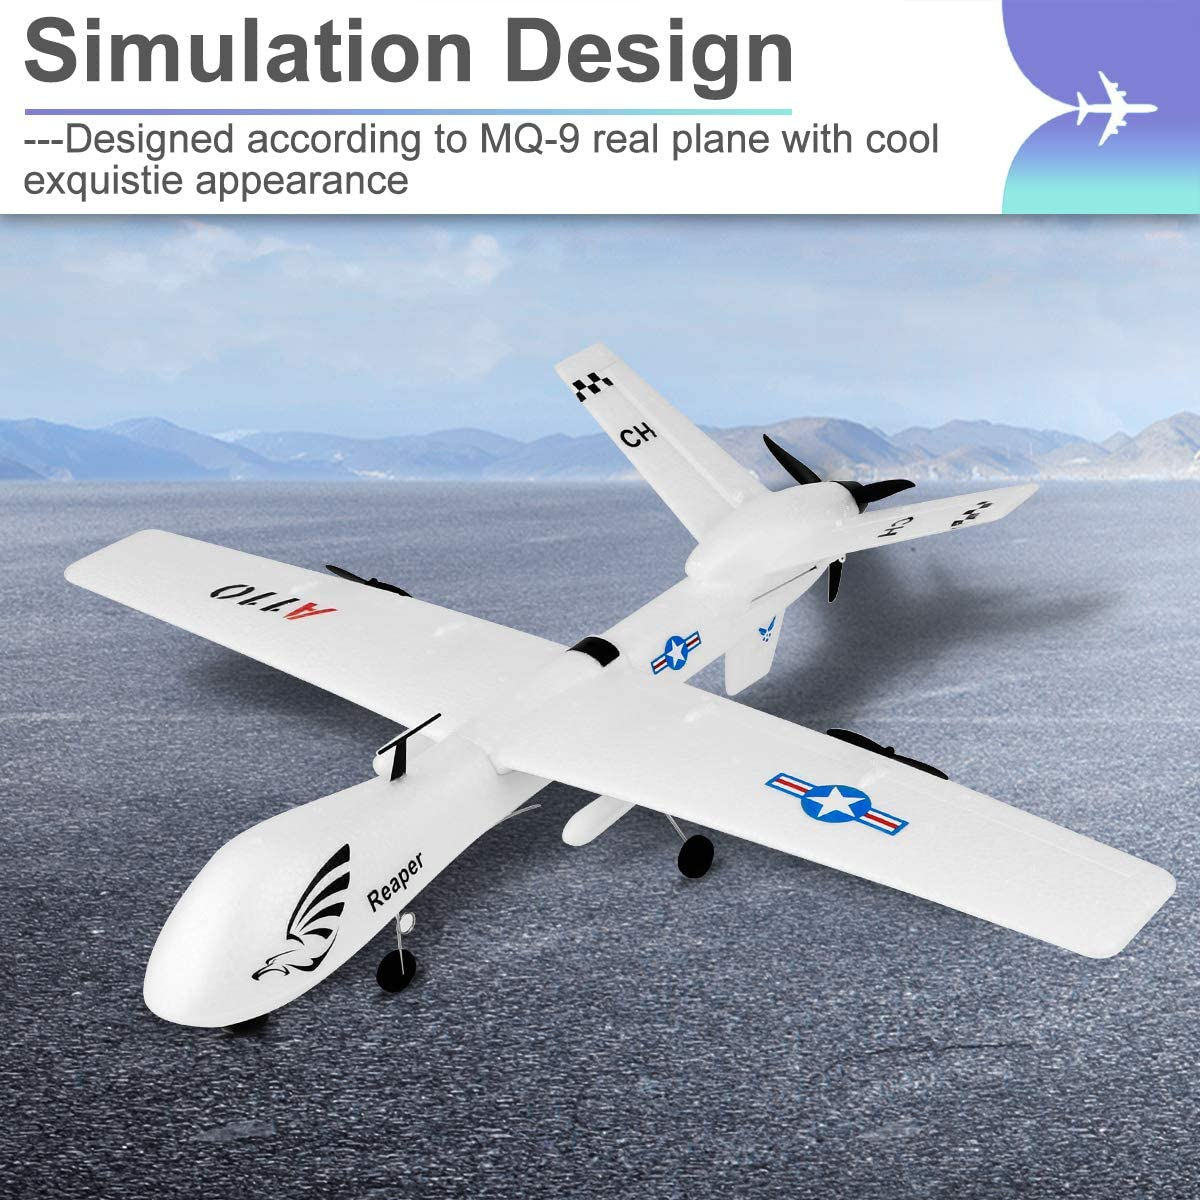 FX601 Makerstack RC Plane 2.4GHz 2 Channel Remote Control Airplane 3-Axis Gyro RC Airplane Ready to Fly for Beginner Boys Kids